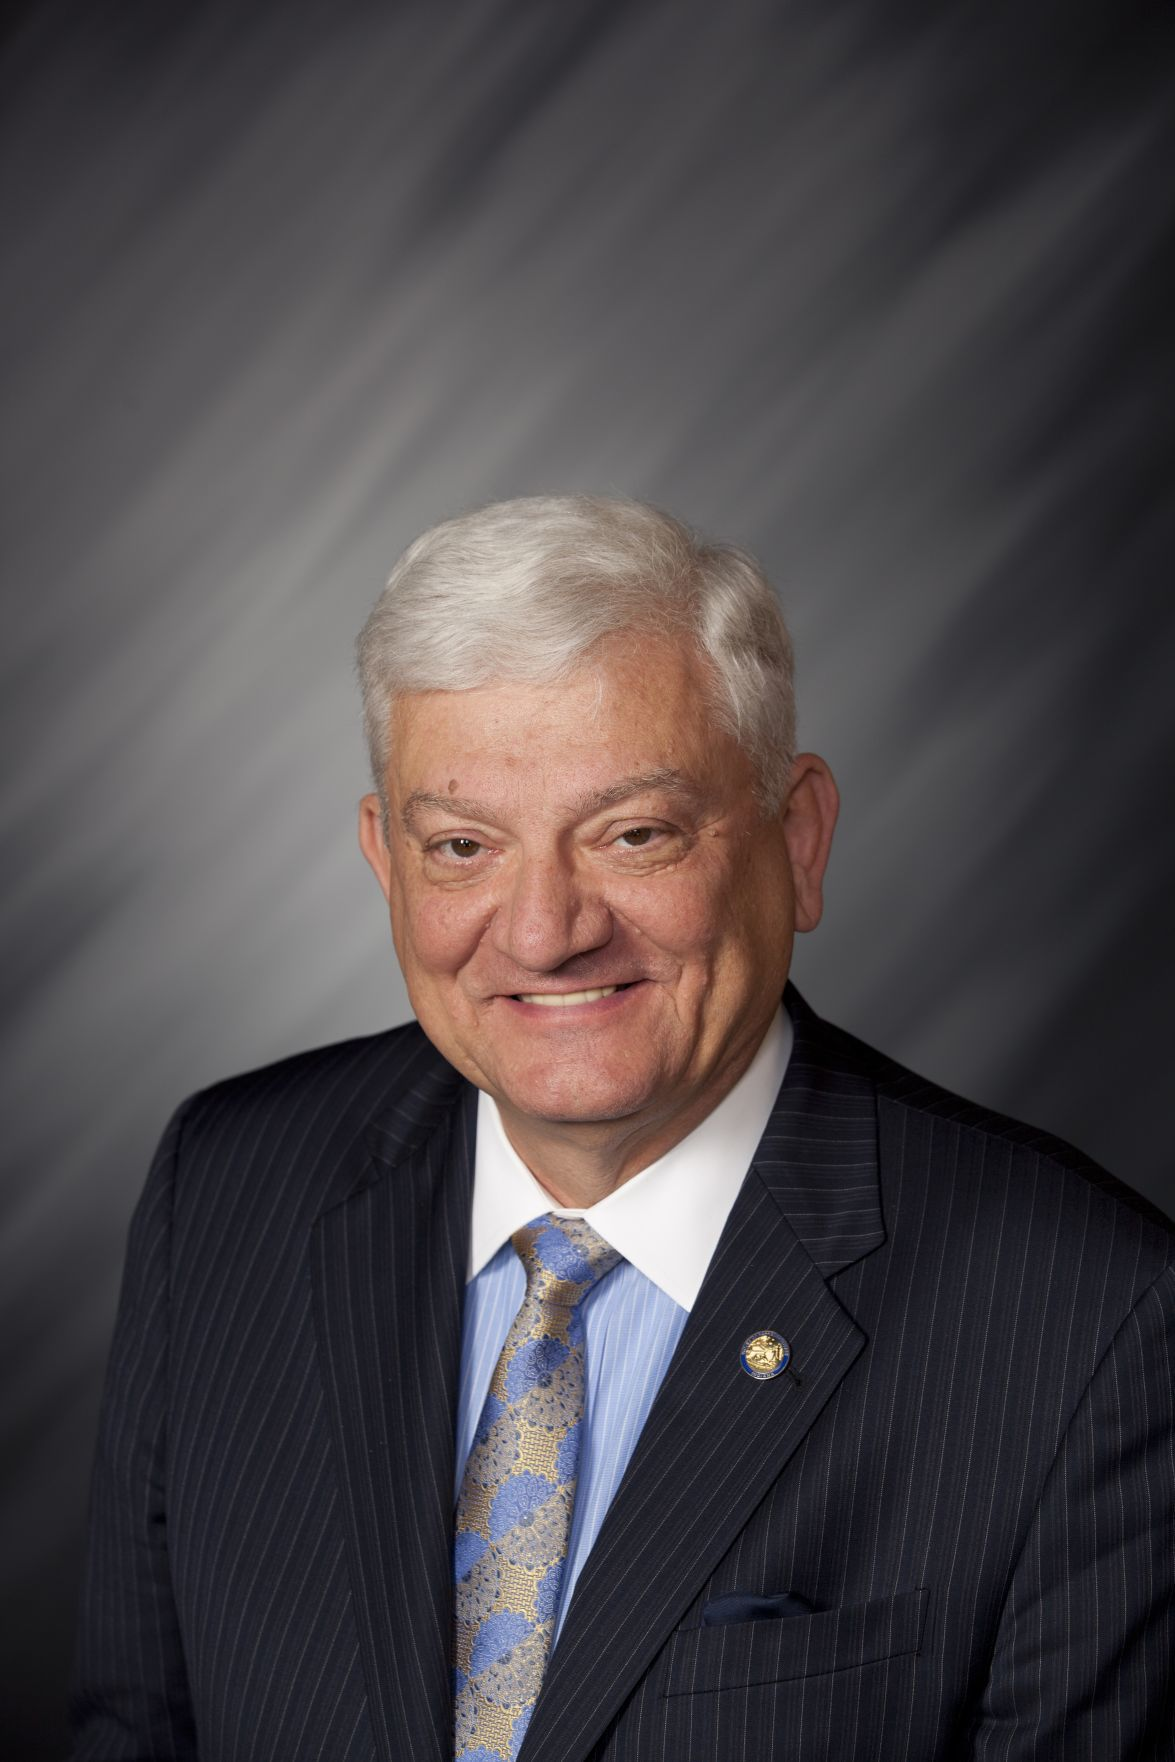 State Rep. Ed Soliday, R-Valparaiso